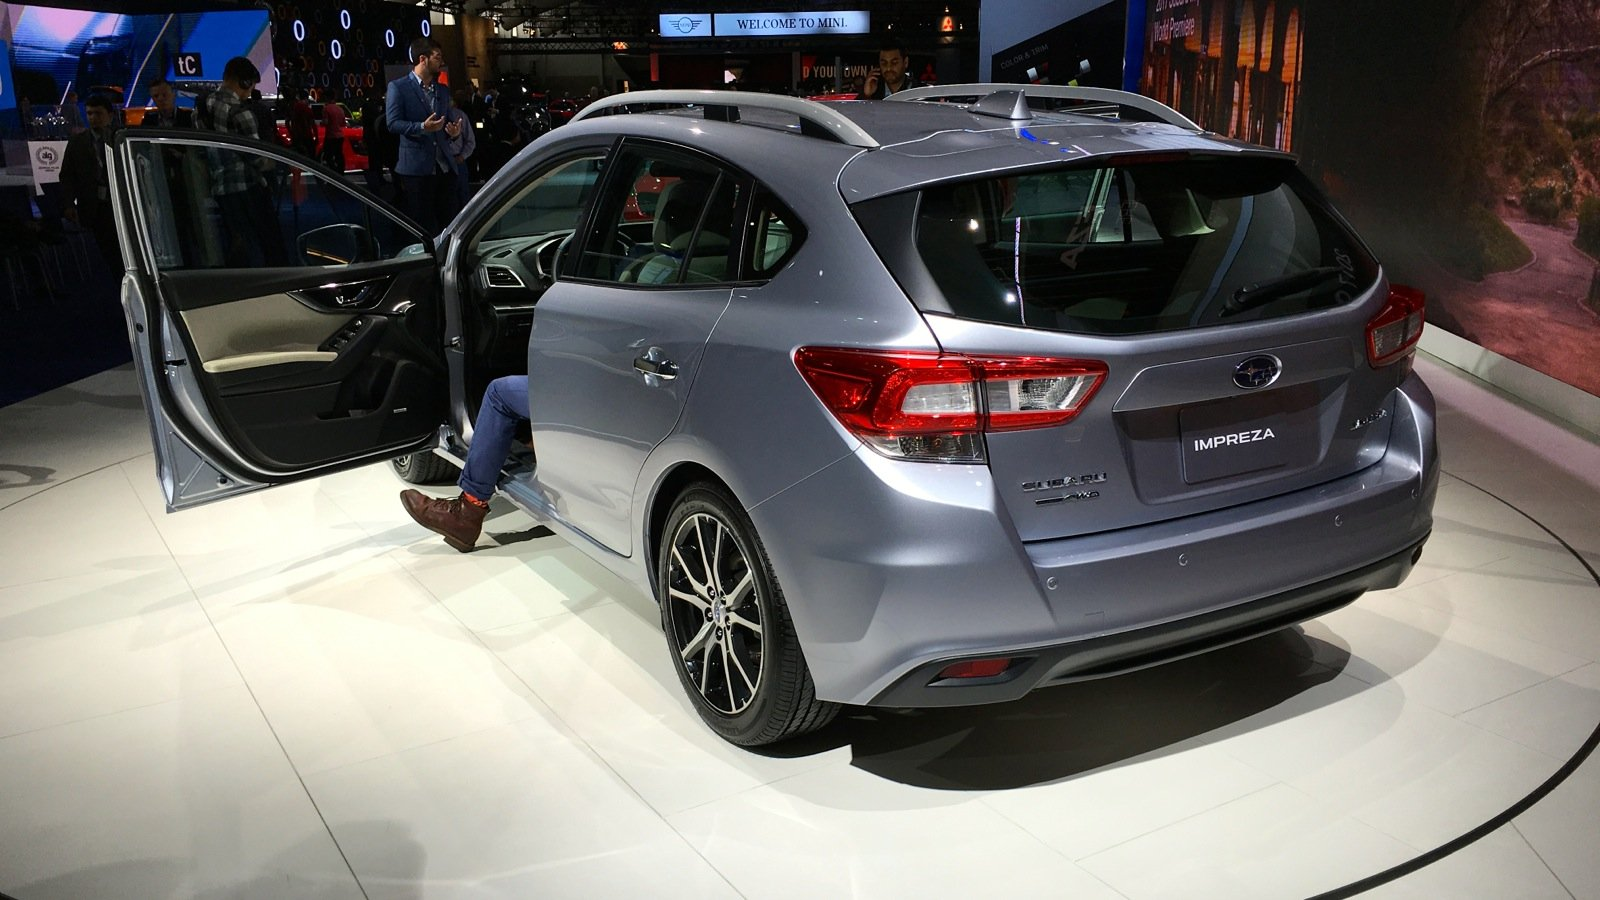 2017 subaru impreza hatchback debut at auto show 2017 2018 best cars reviews. Black Bedroom Furniture Sets. Home Design Ideas